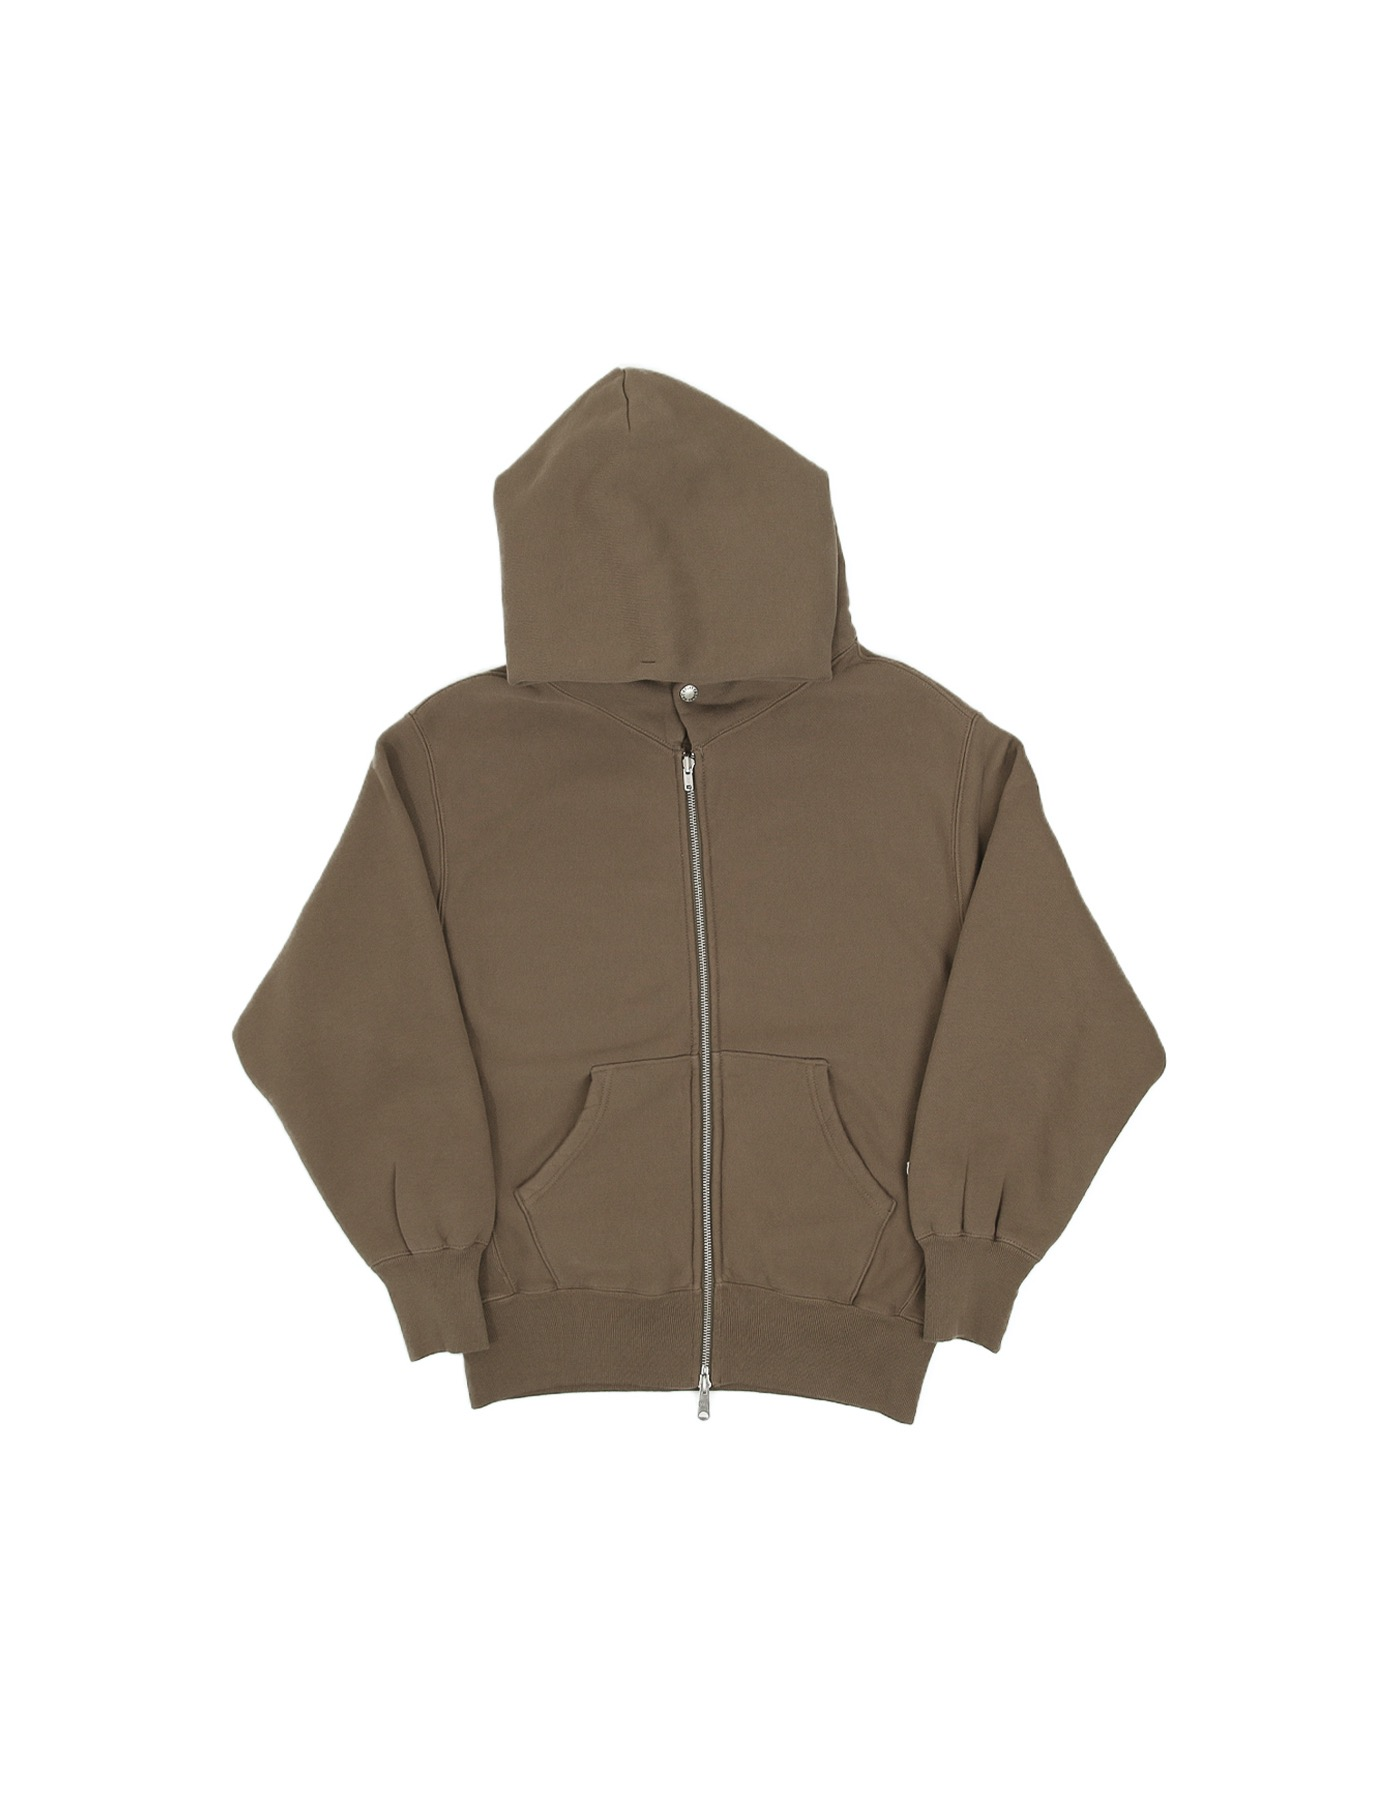 334 REVERSE FLEECE ZIP-UP HOODIE / DESERT KHAKI